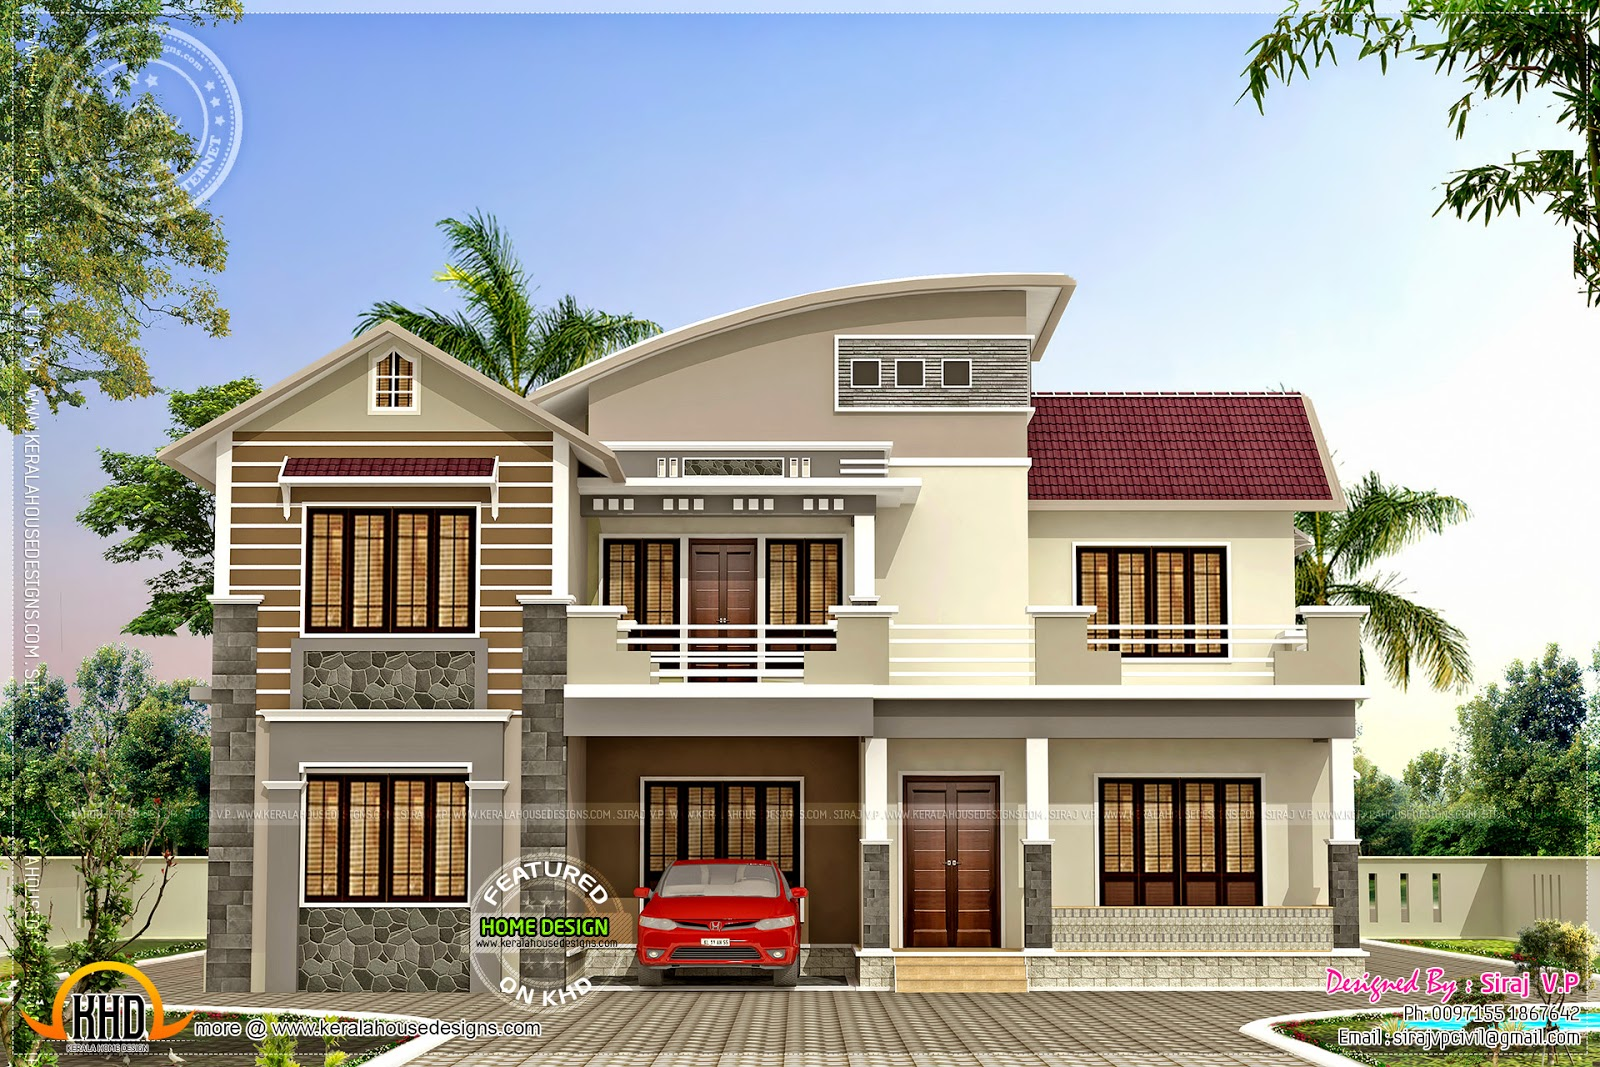 Front Design Of Normal House Part - 42: Beautiful Home Front Elevation Designs And Ideas 9 Trendy Design